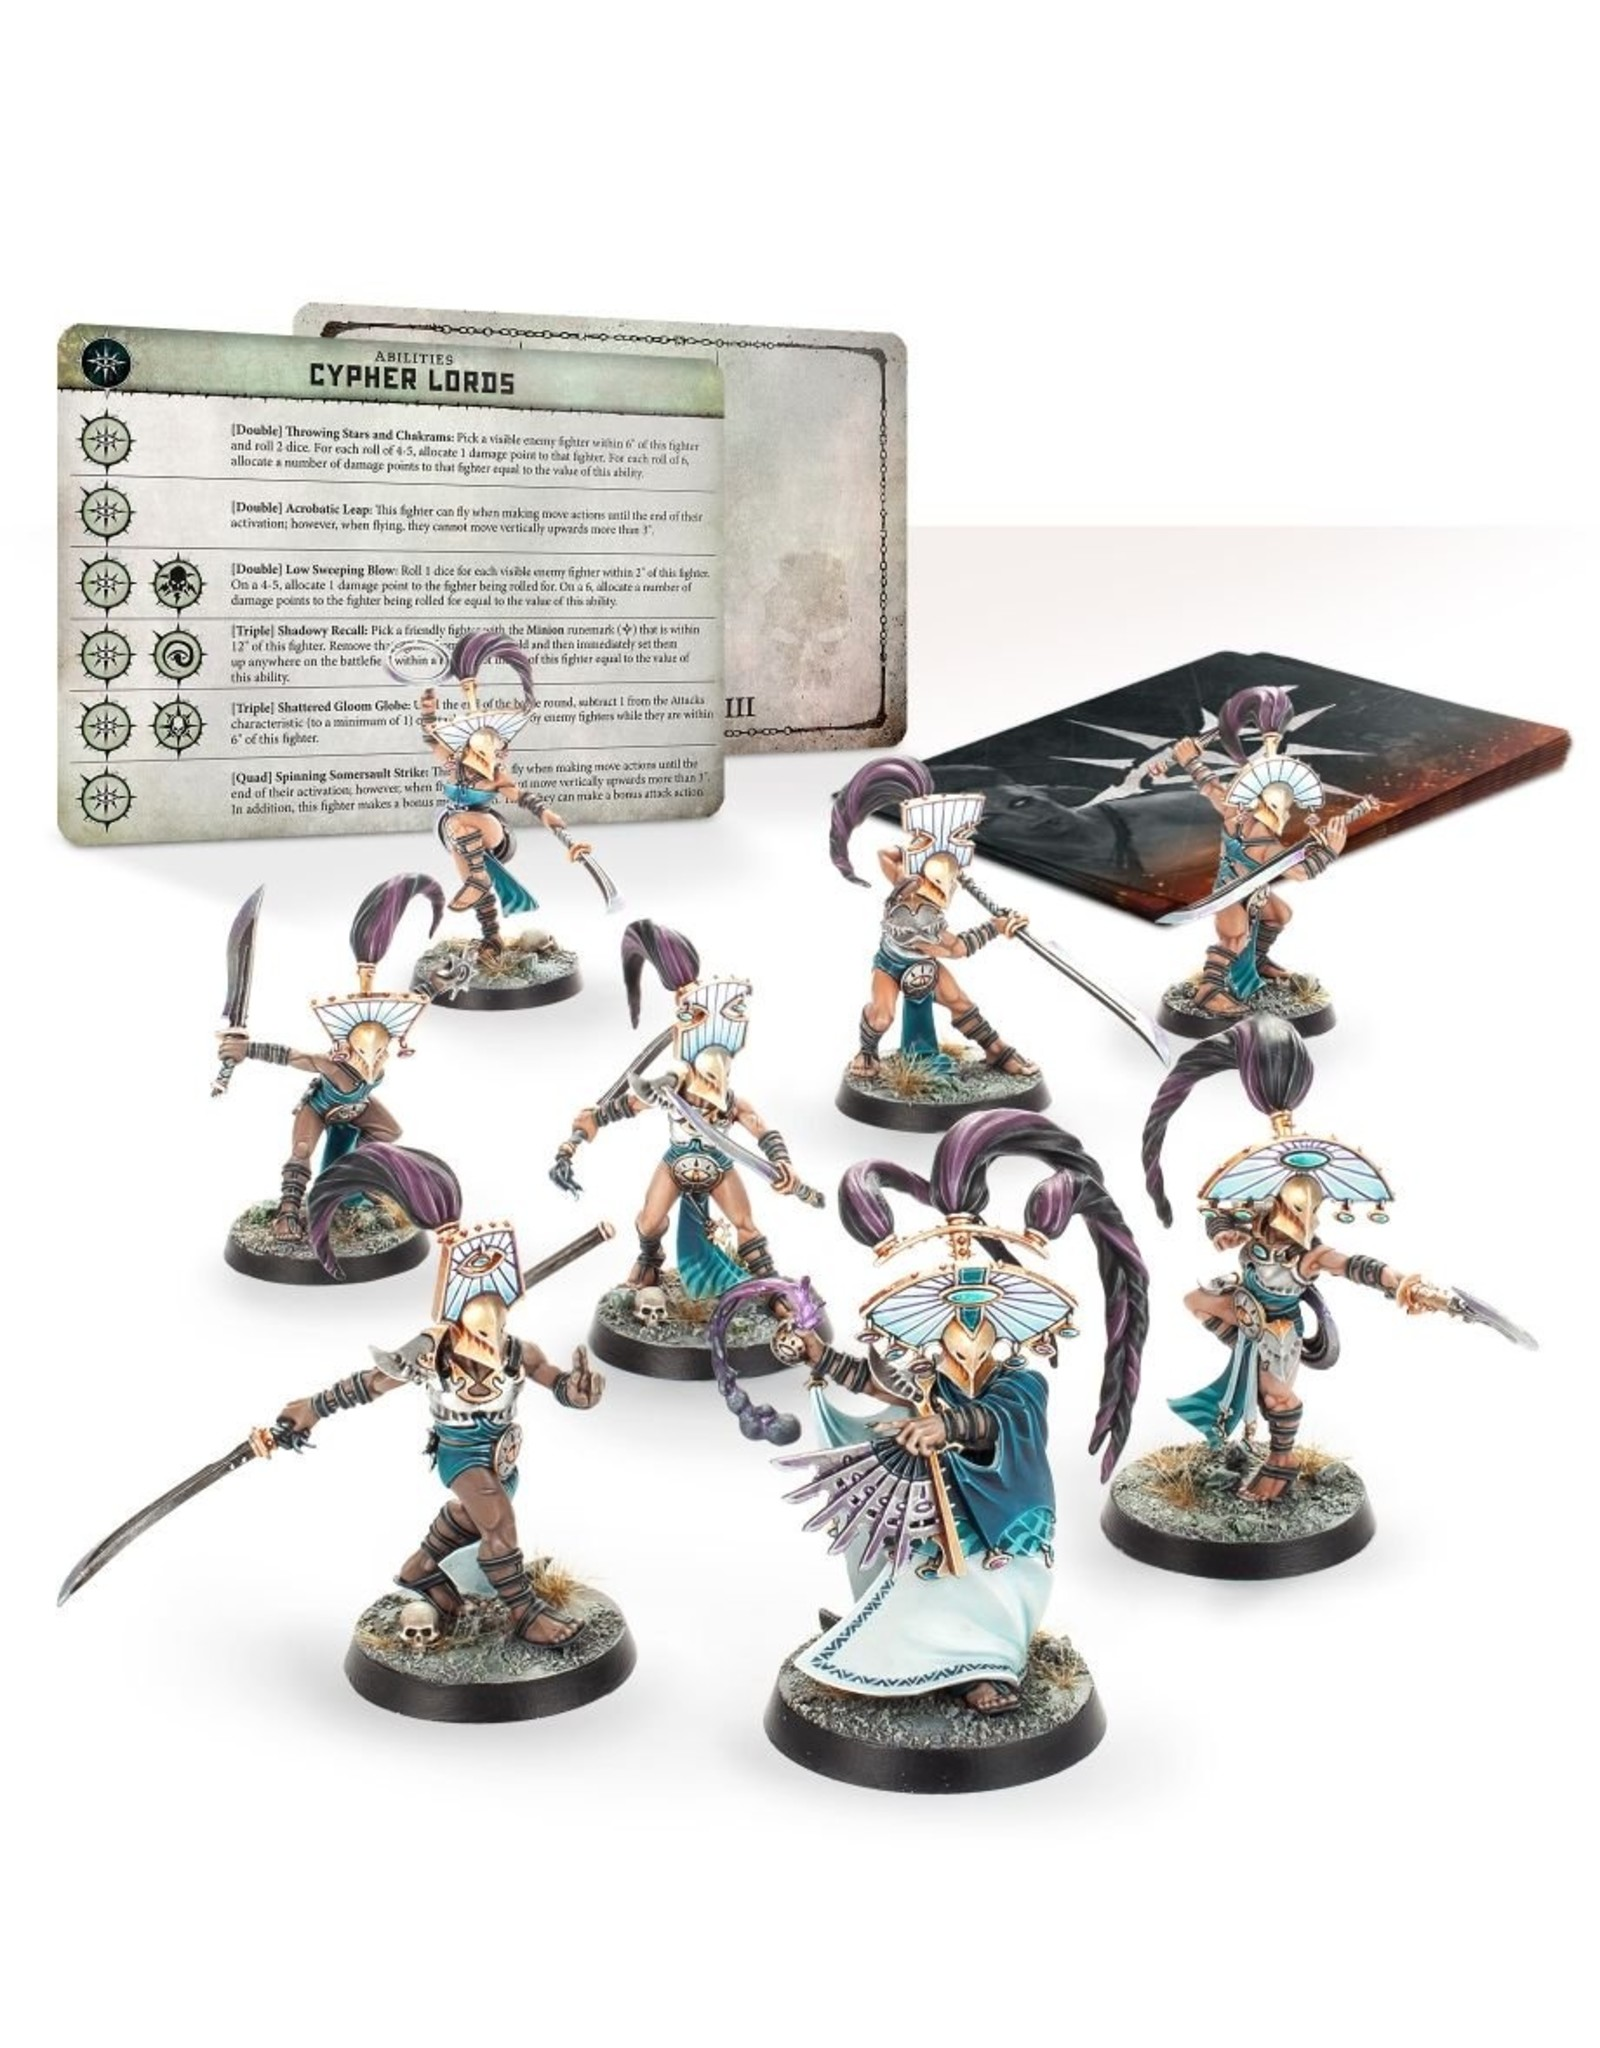 Games Workshop Warcry: Cypher Lords